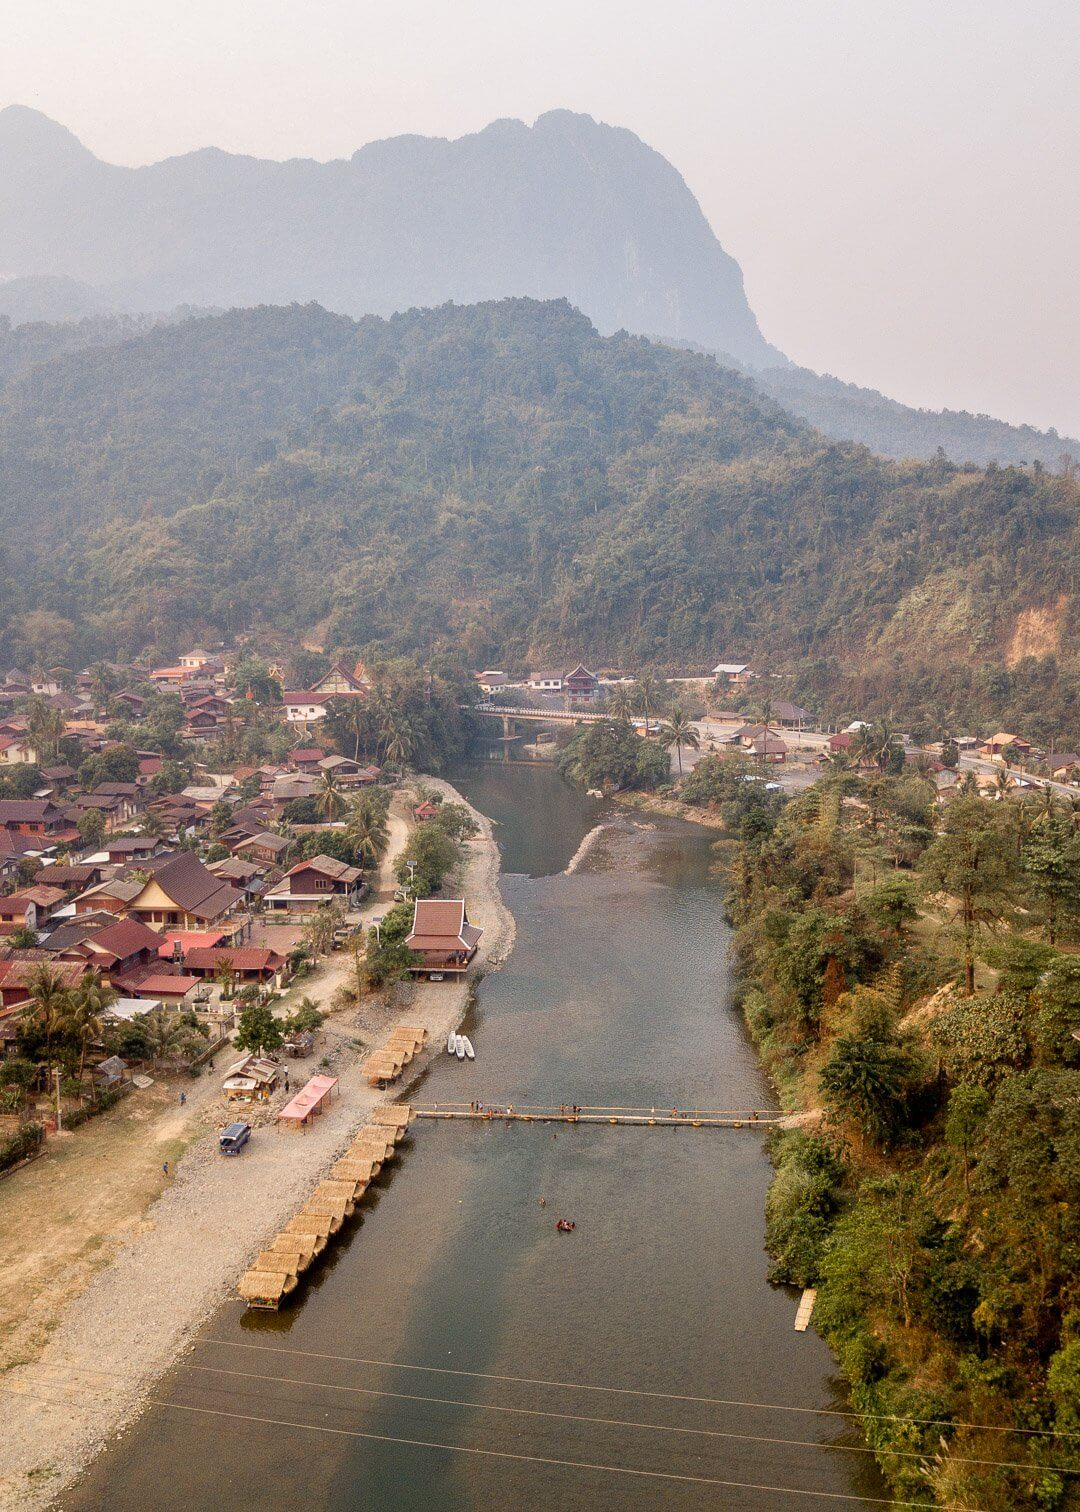 The village of Pha Tang near Vang Vieng in Laos